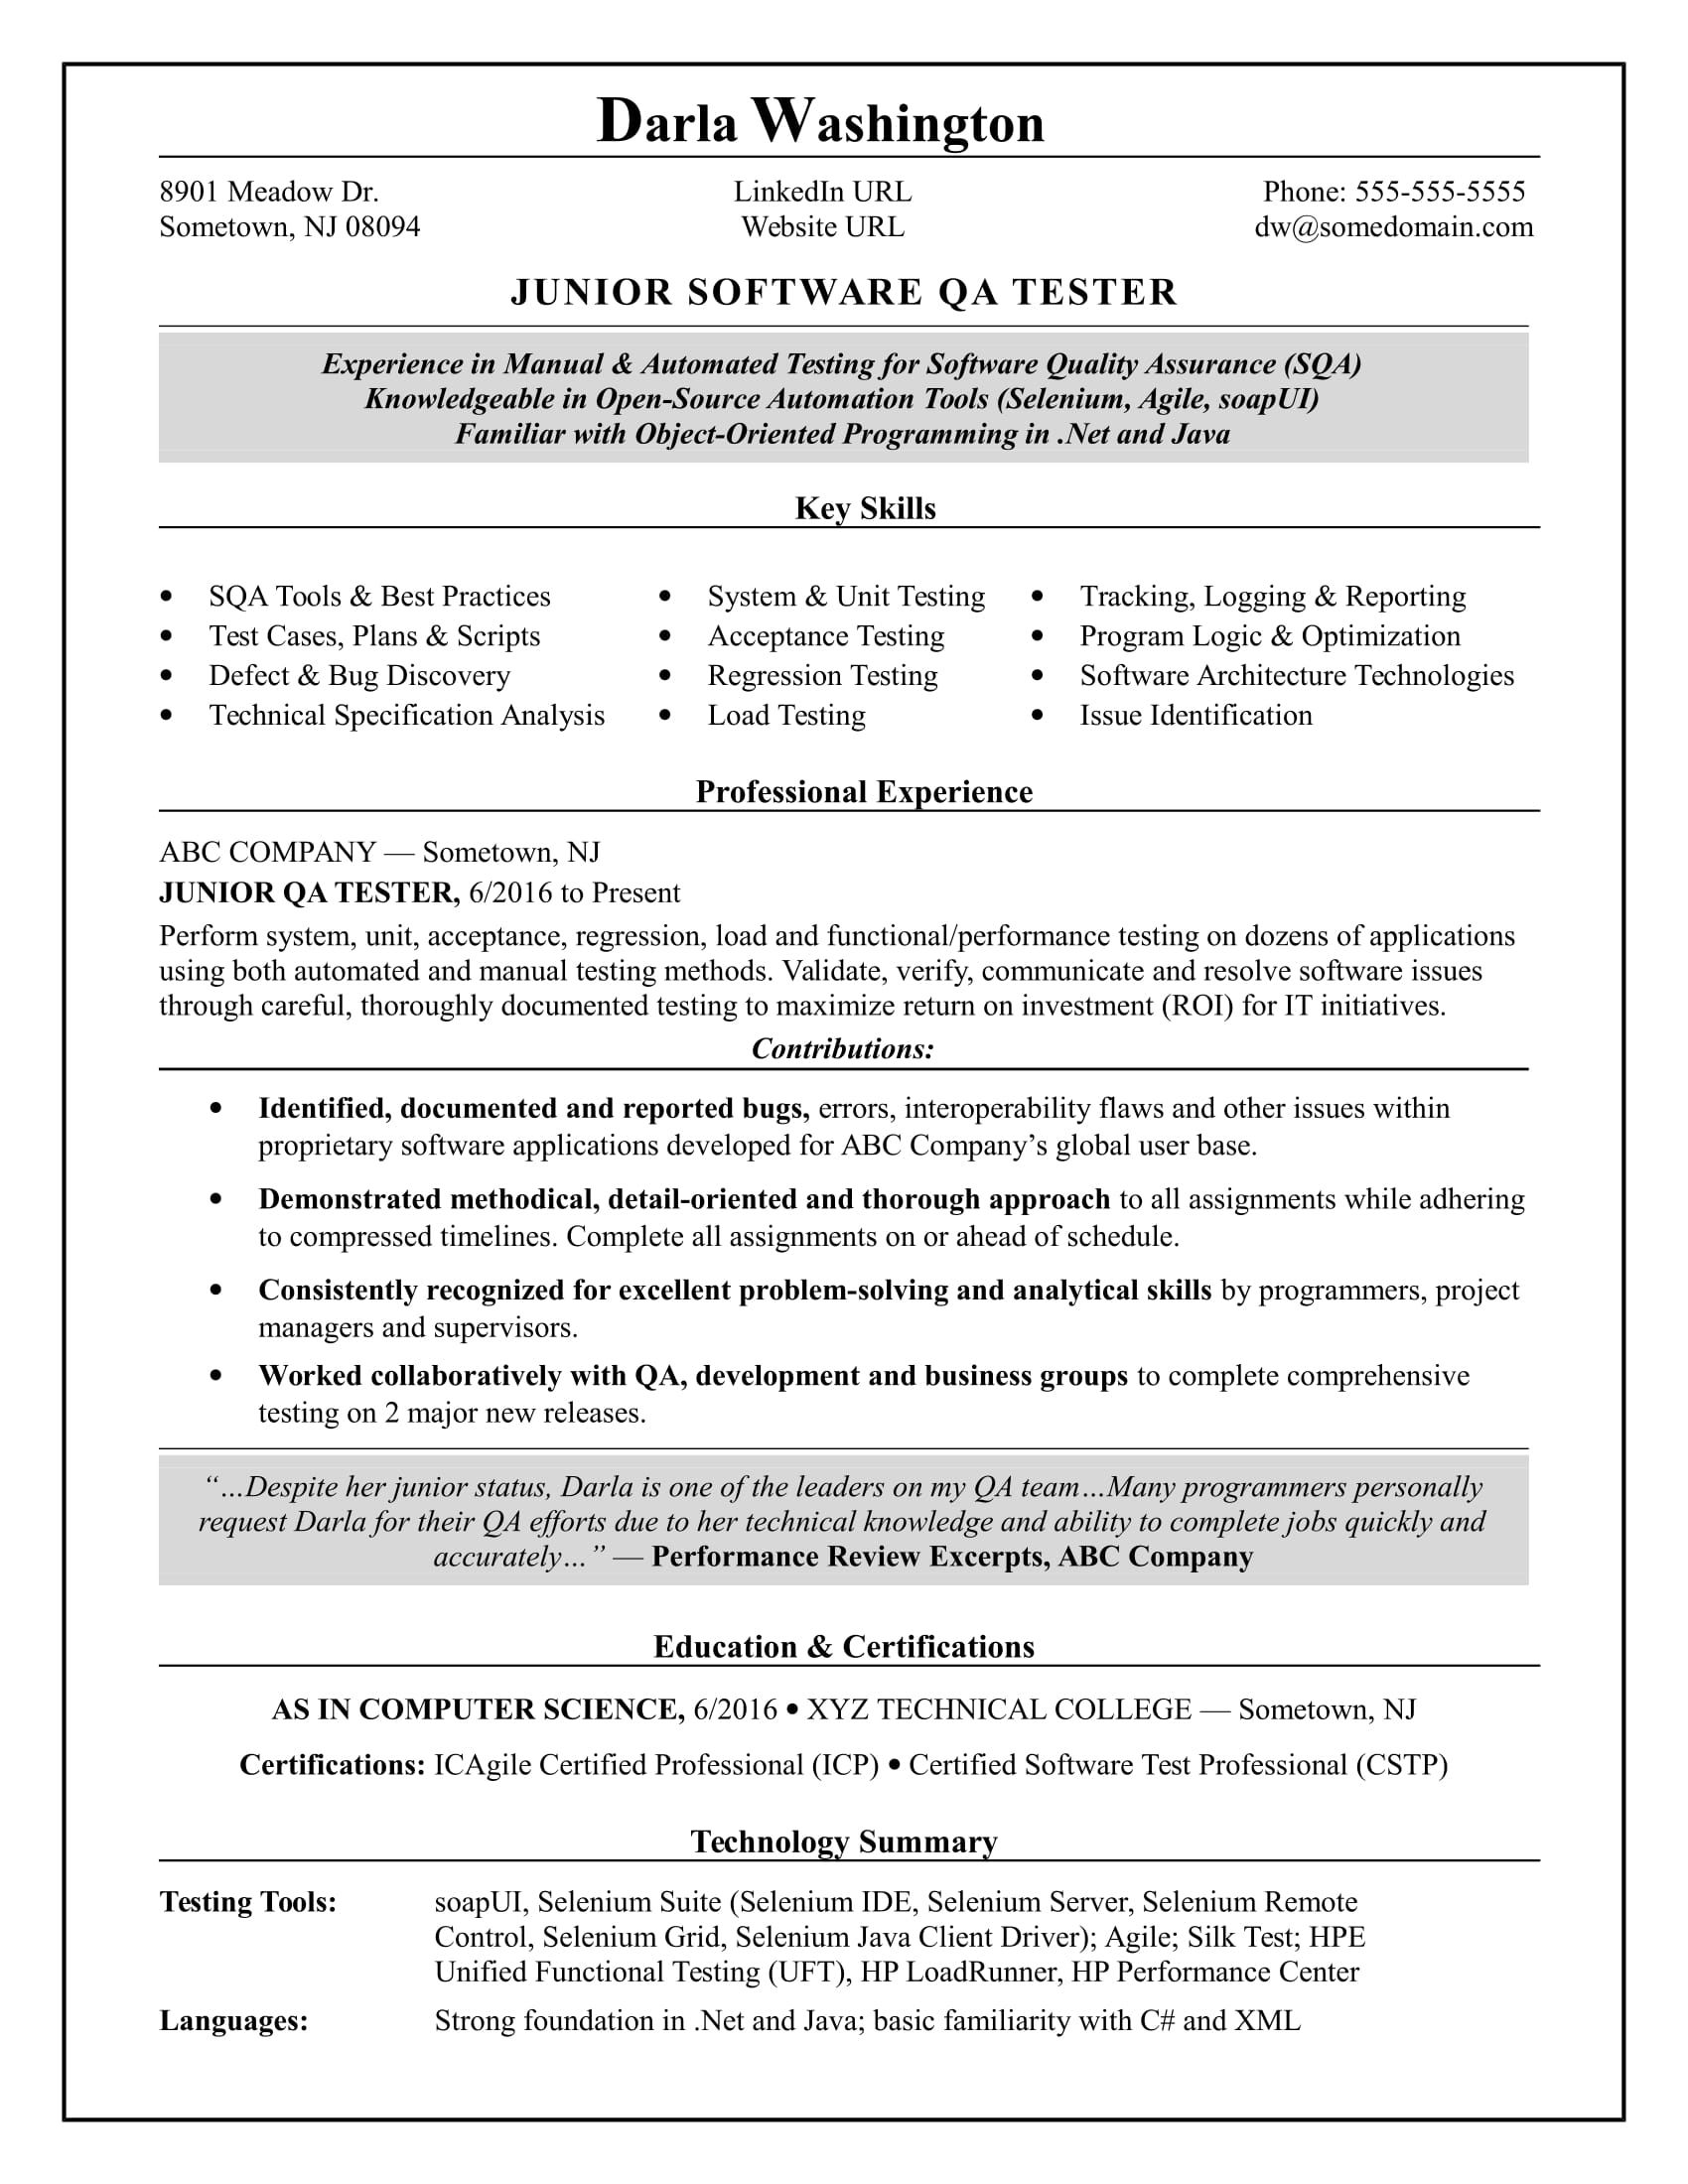 qa software tester entry level - Great manual testing resume samples for experienced